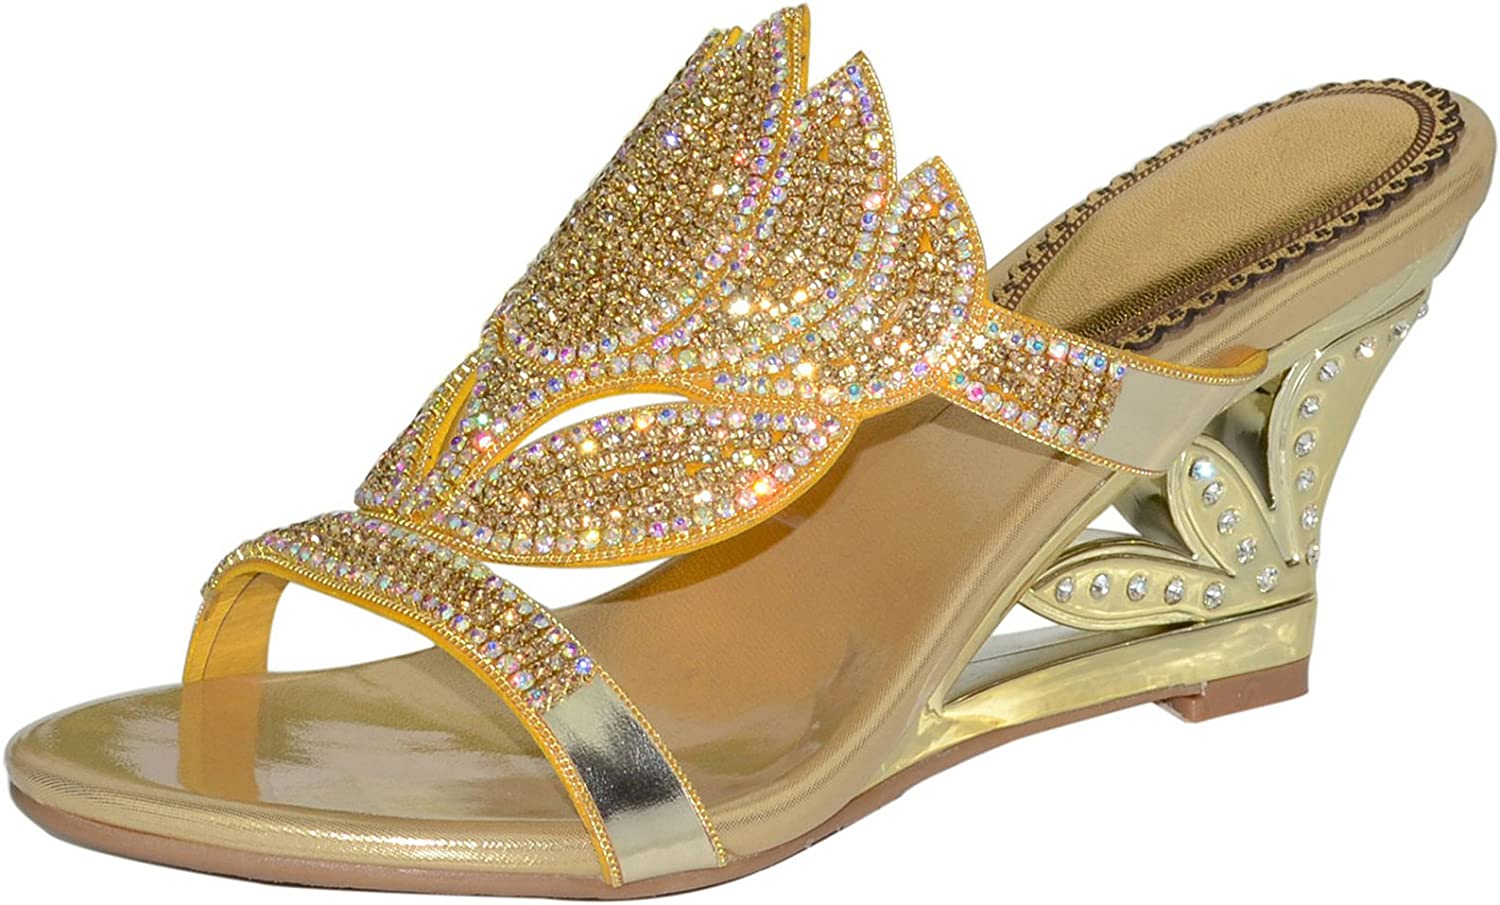 LizForm Crystals Studded Slid Wedge Sandal Front Strap Wedding Evening Party Prom Sandal gold 7.5